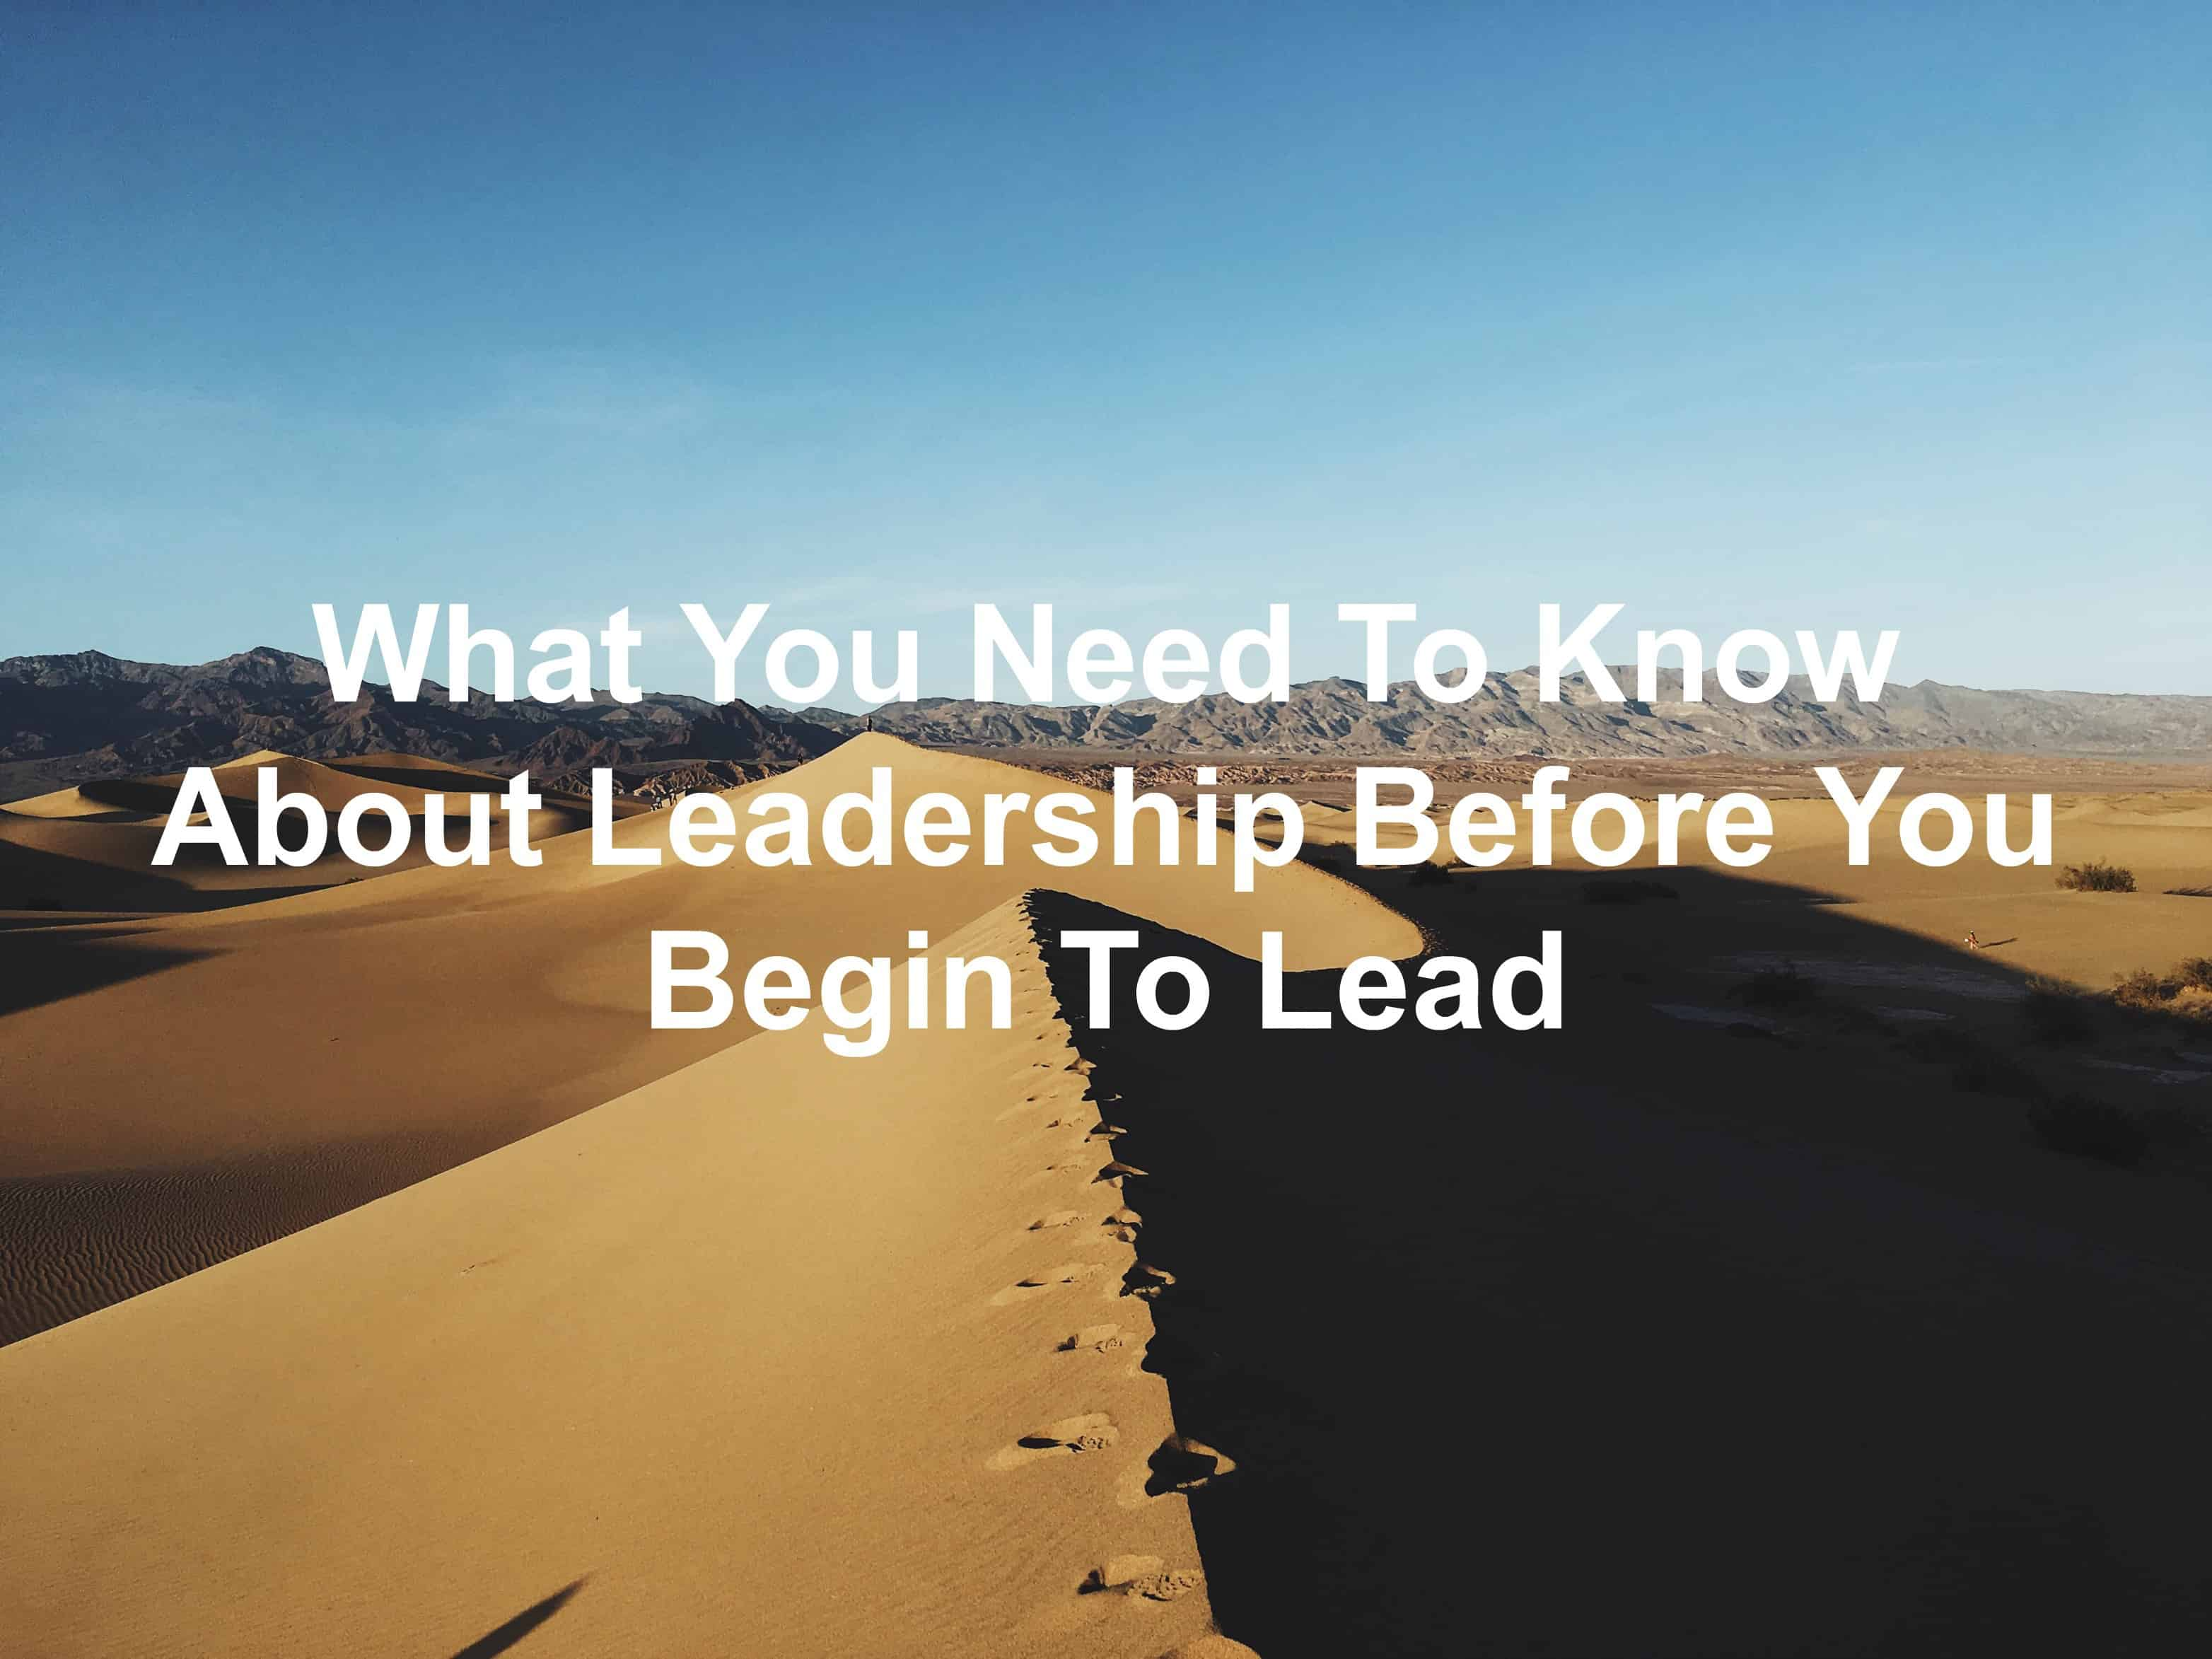 Leadership requires you to know these things